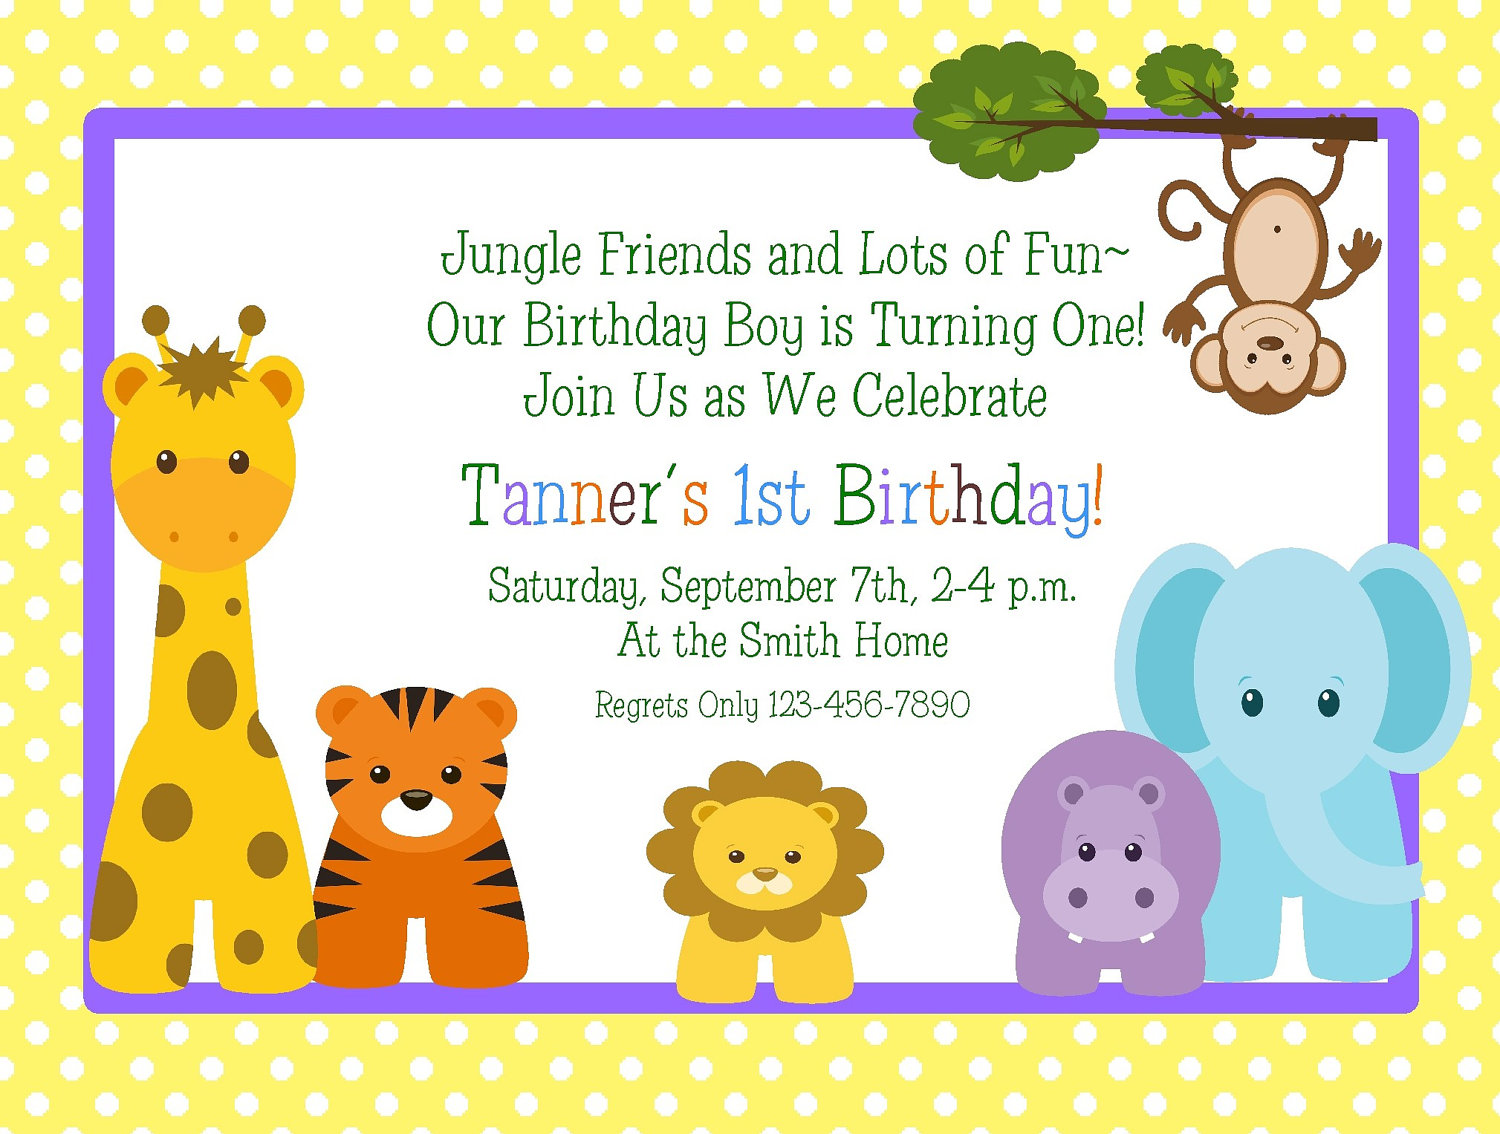 Birthday Party Invitation Maker is Perfect Ideas To Make Perfect Invitations Layout